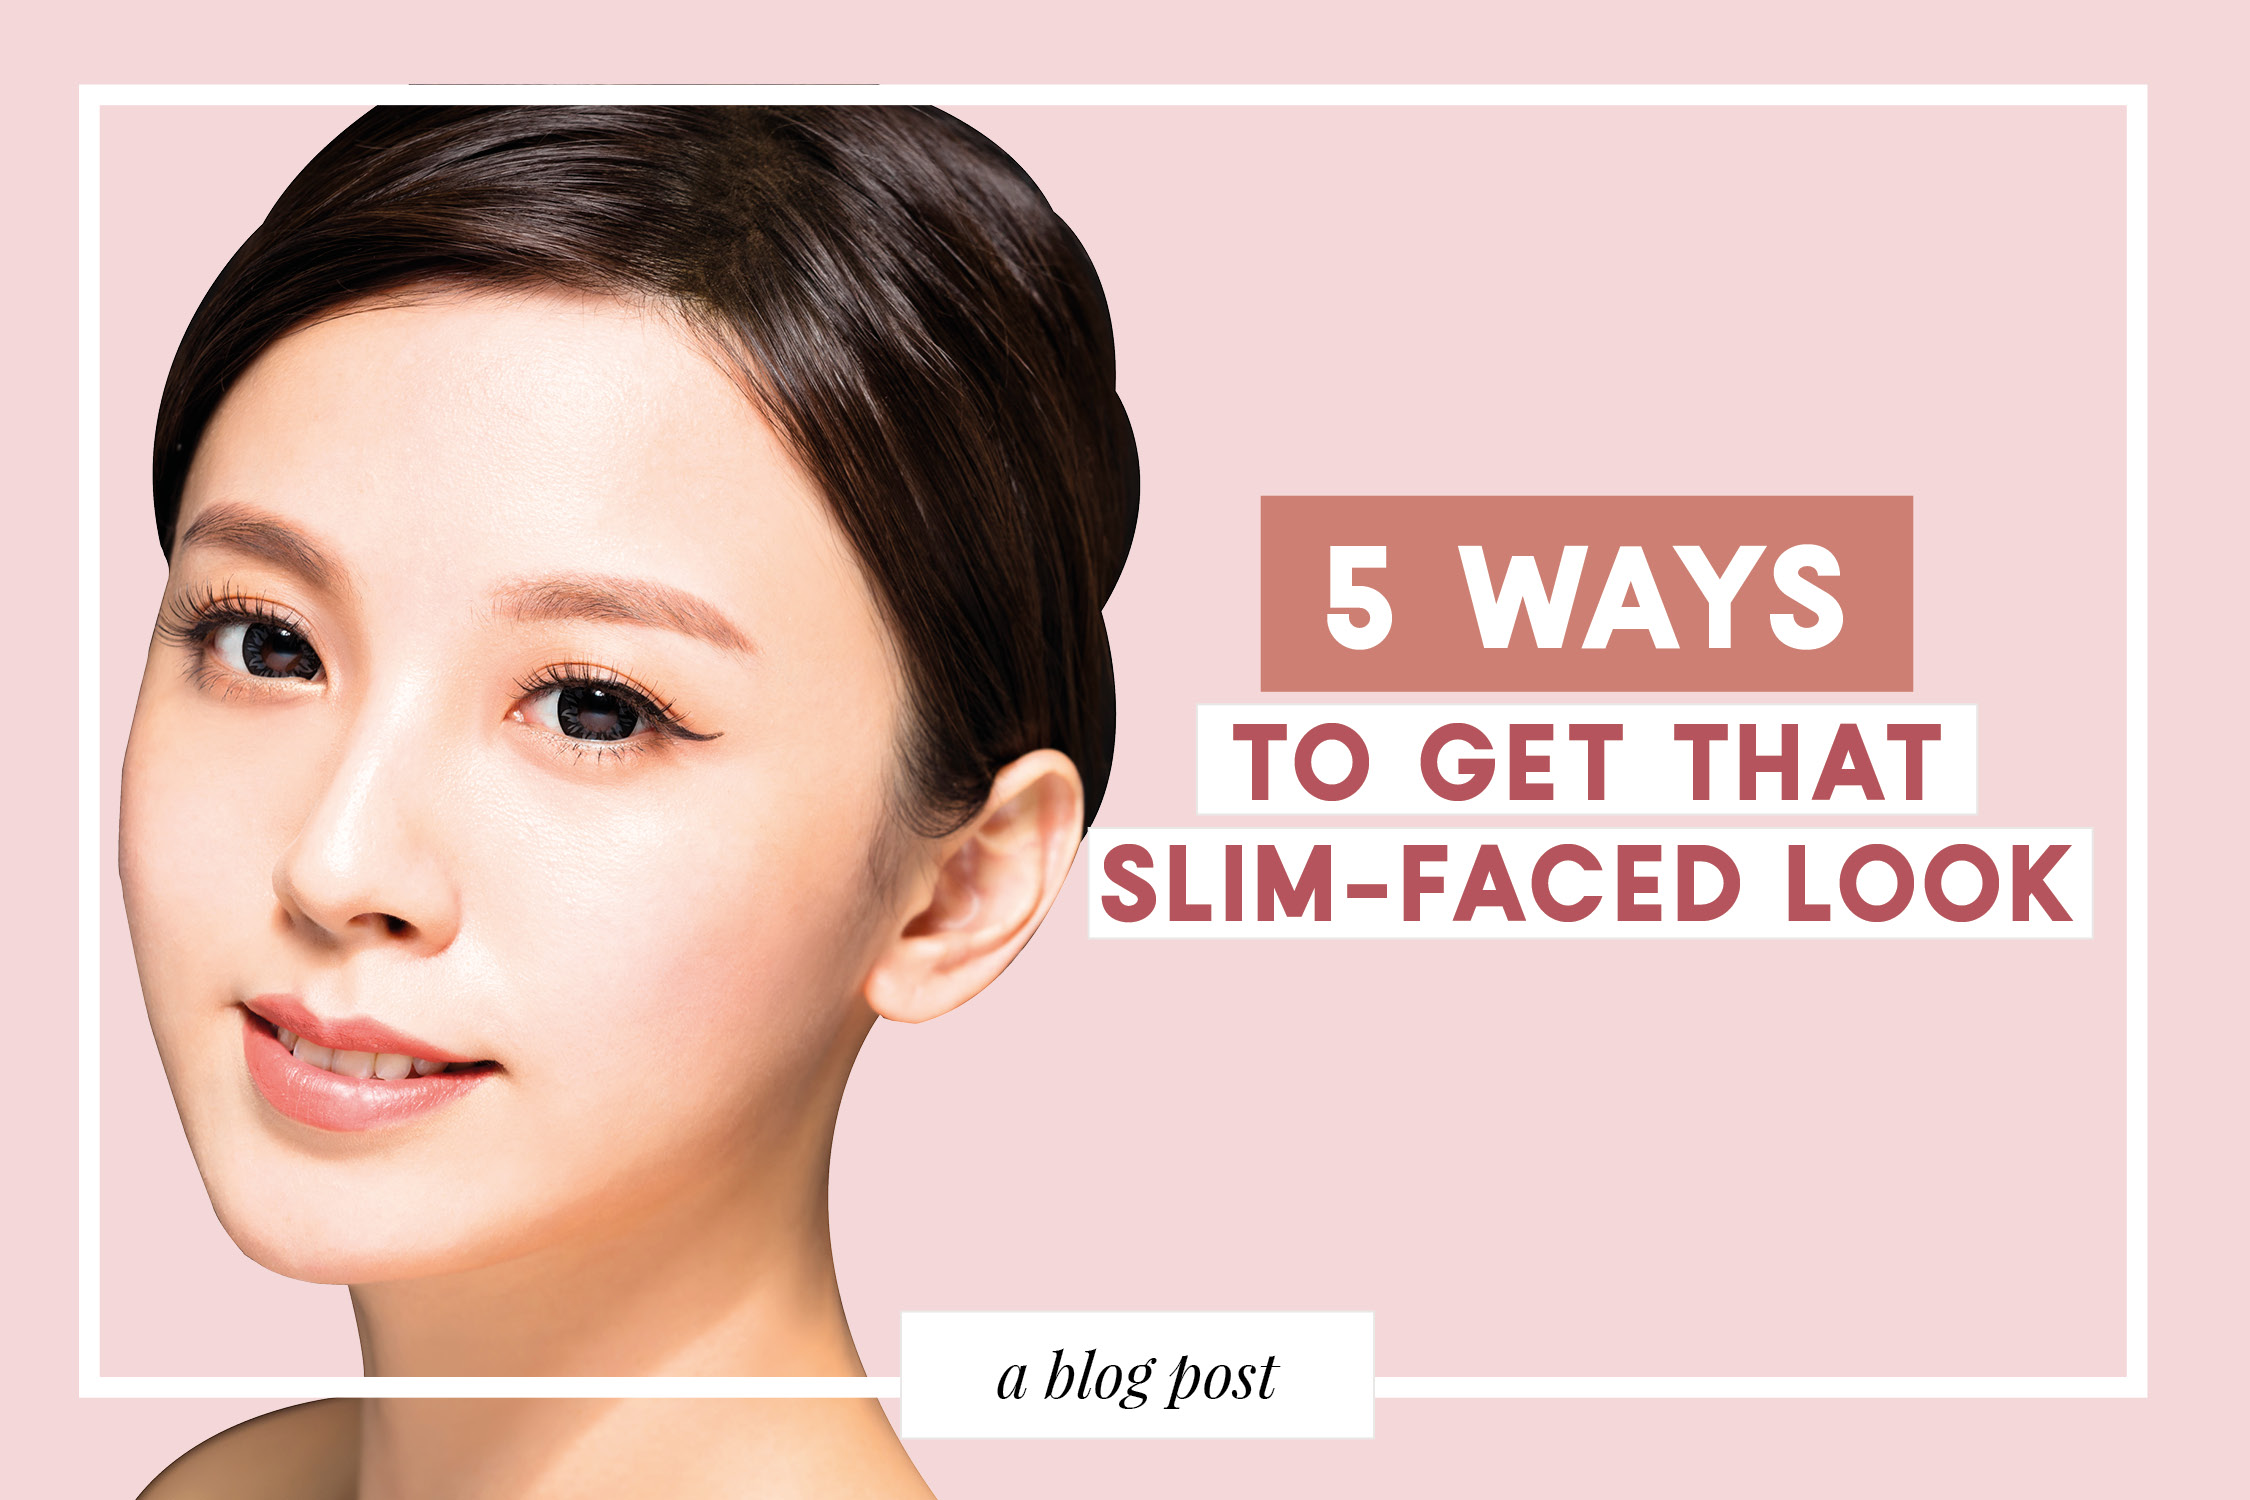 5 Ways to Get That Slim-Face Look